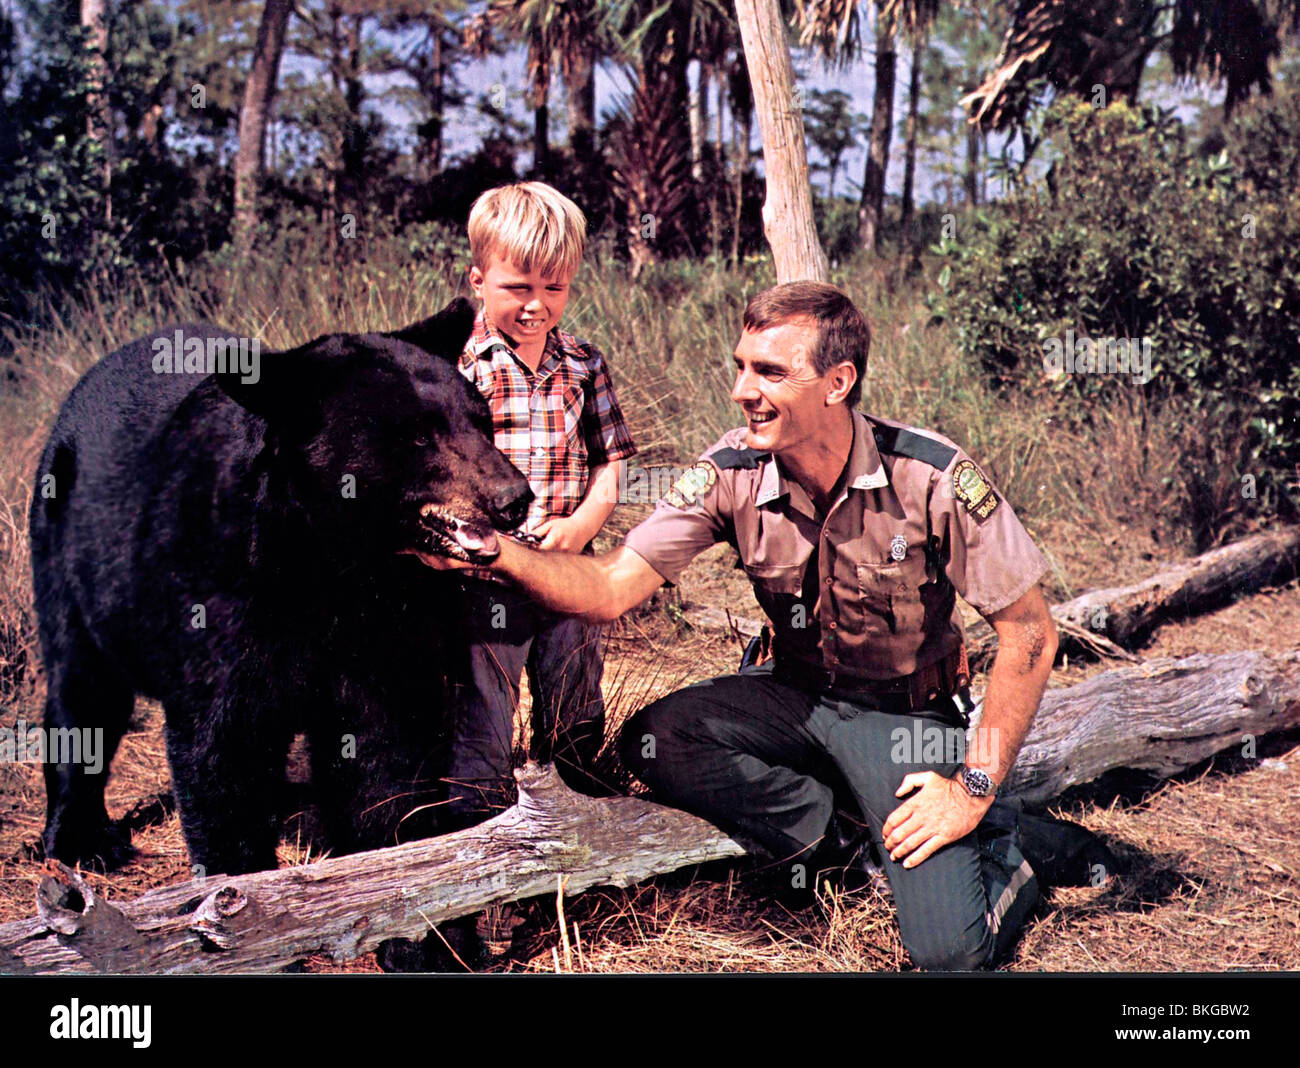 GENTLE BEN (TV) CLINT HOWARD, DENNIS WEAVER GENB 002 CP Stock Photo